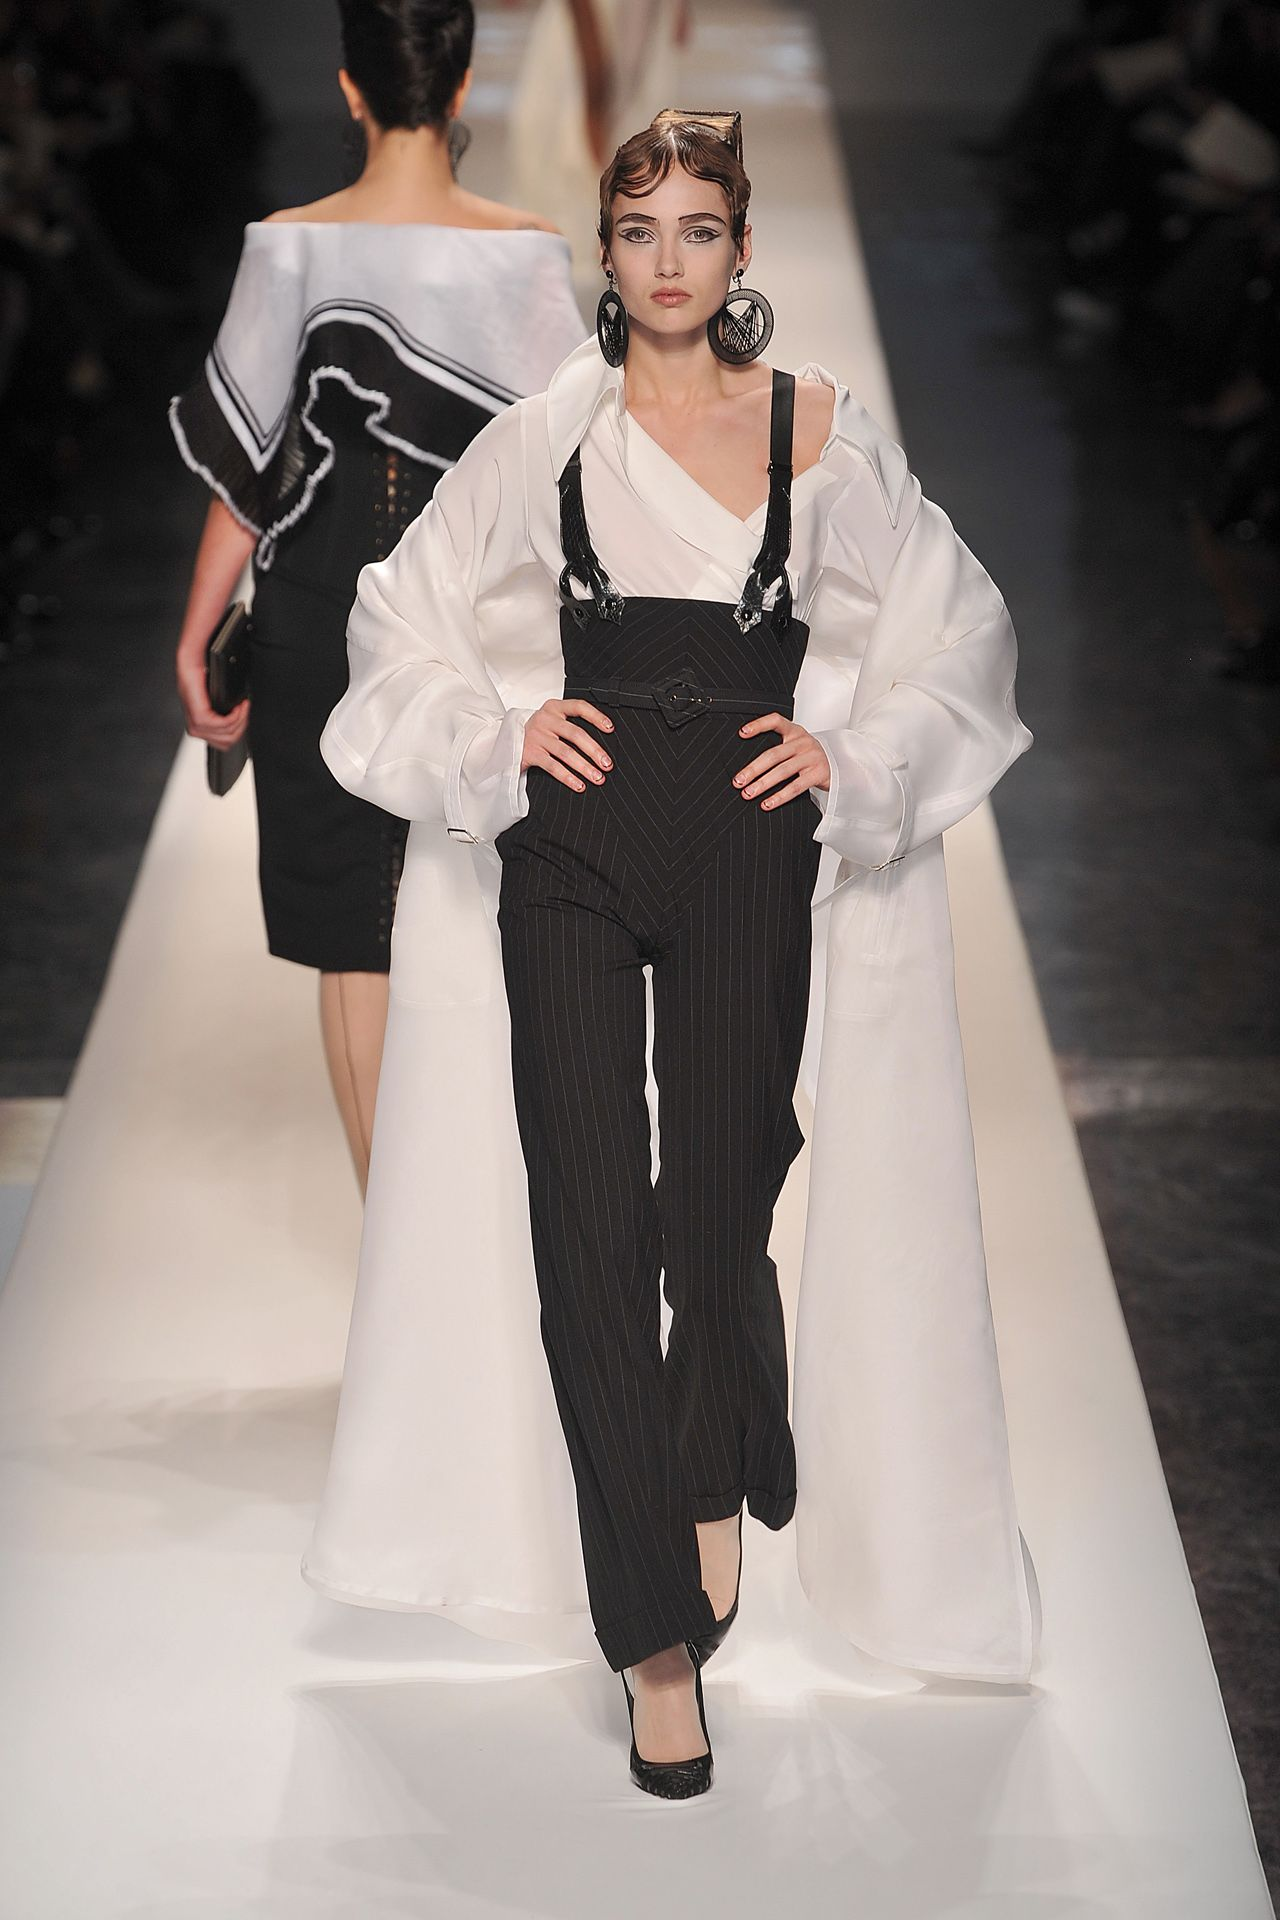 Jean Paul Gaultier Spring/Summer 20 Couture   Fashion, Jean paul ...